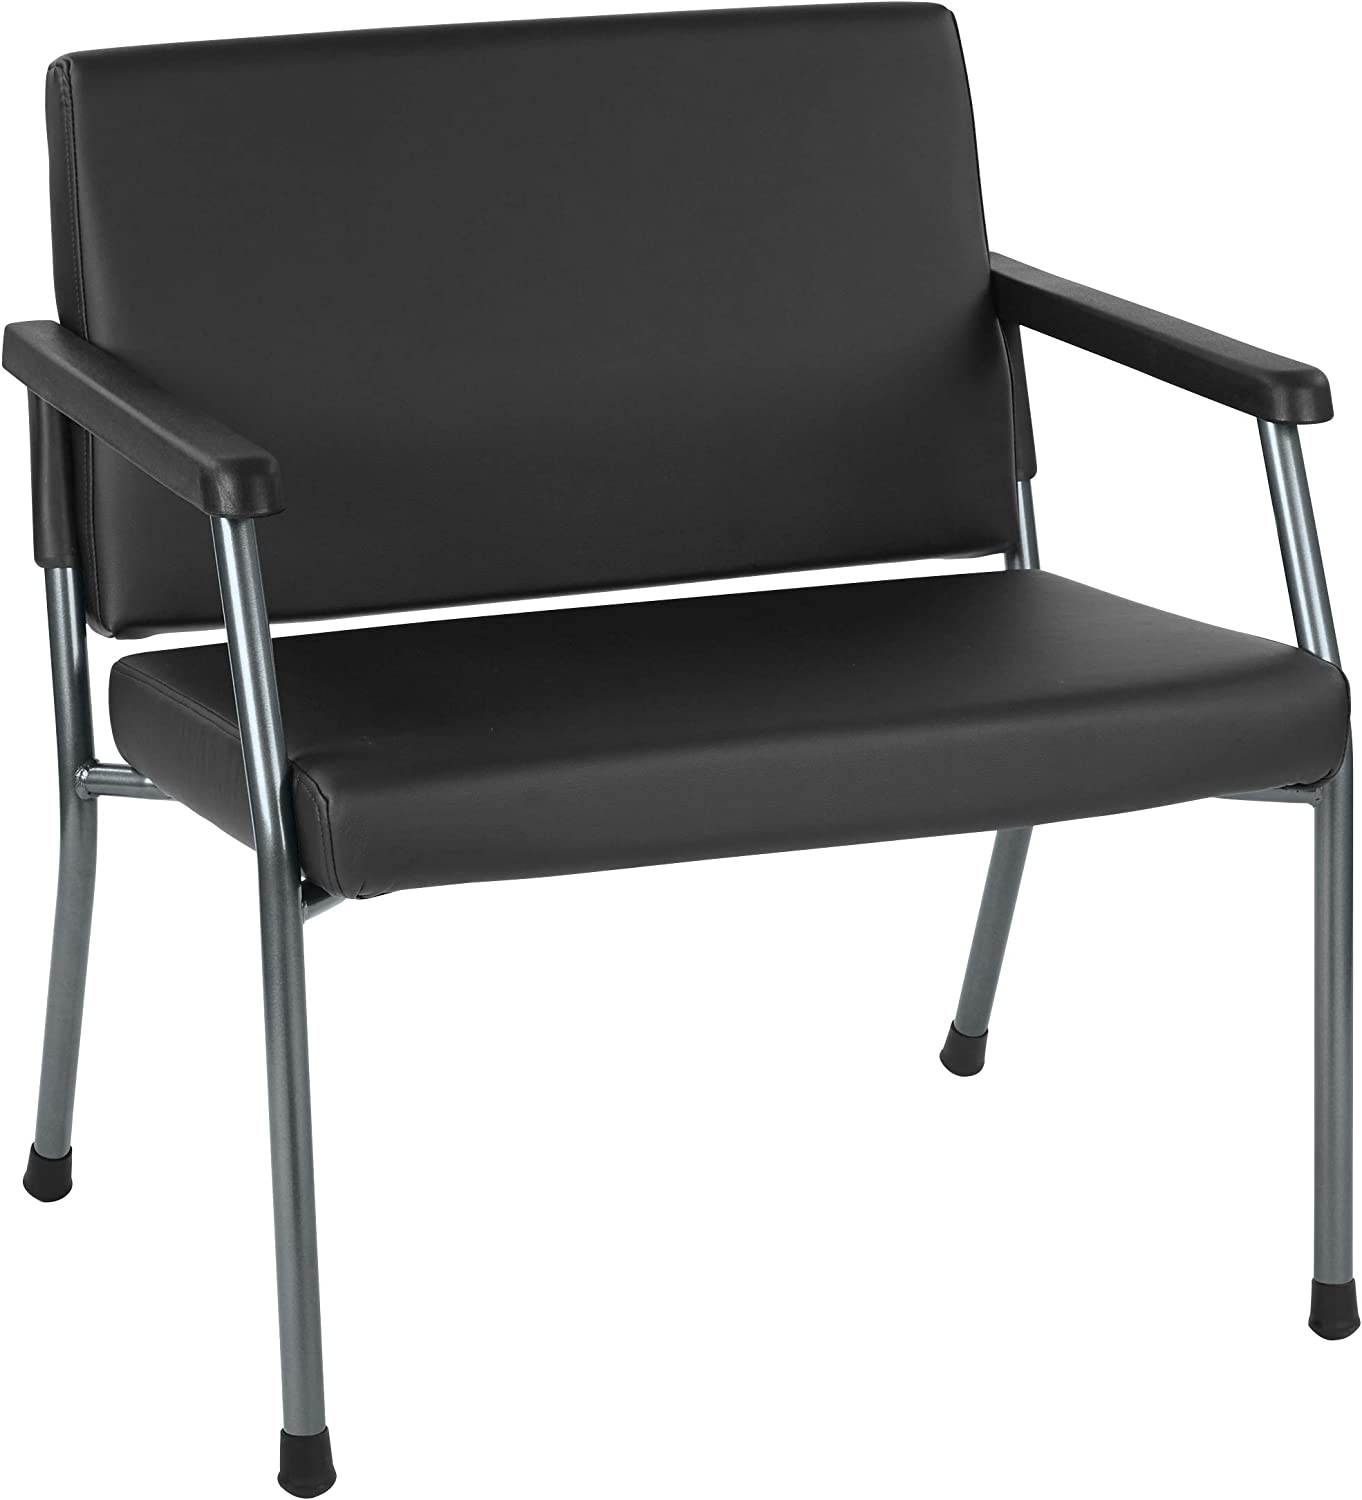 "Office Star Bariatric Big and Tall Medical Office Chair with Oversized 29"" Wide Seat and Sturdy Metal Frame with Back Reinforcement, Dillon Black Faux Leather Fabric, 500 Pound Capacity"